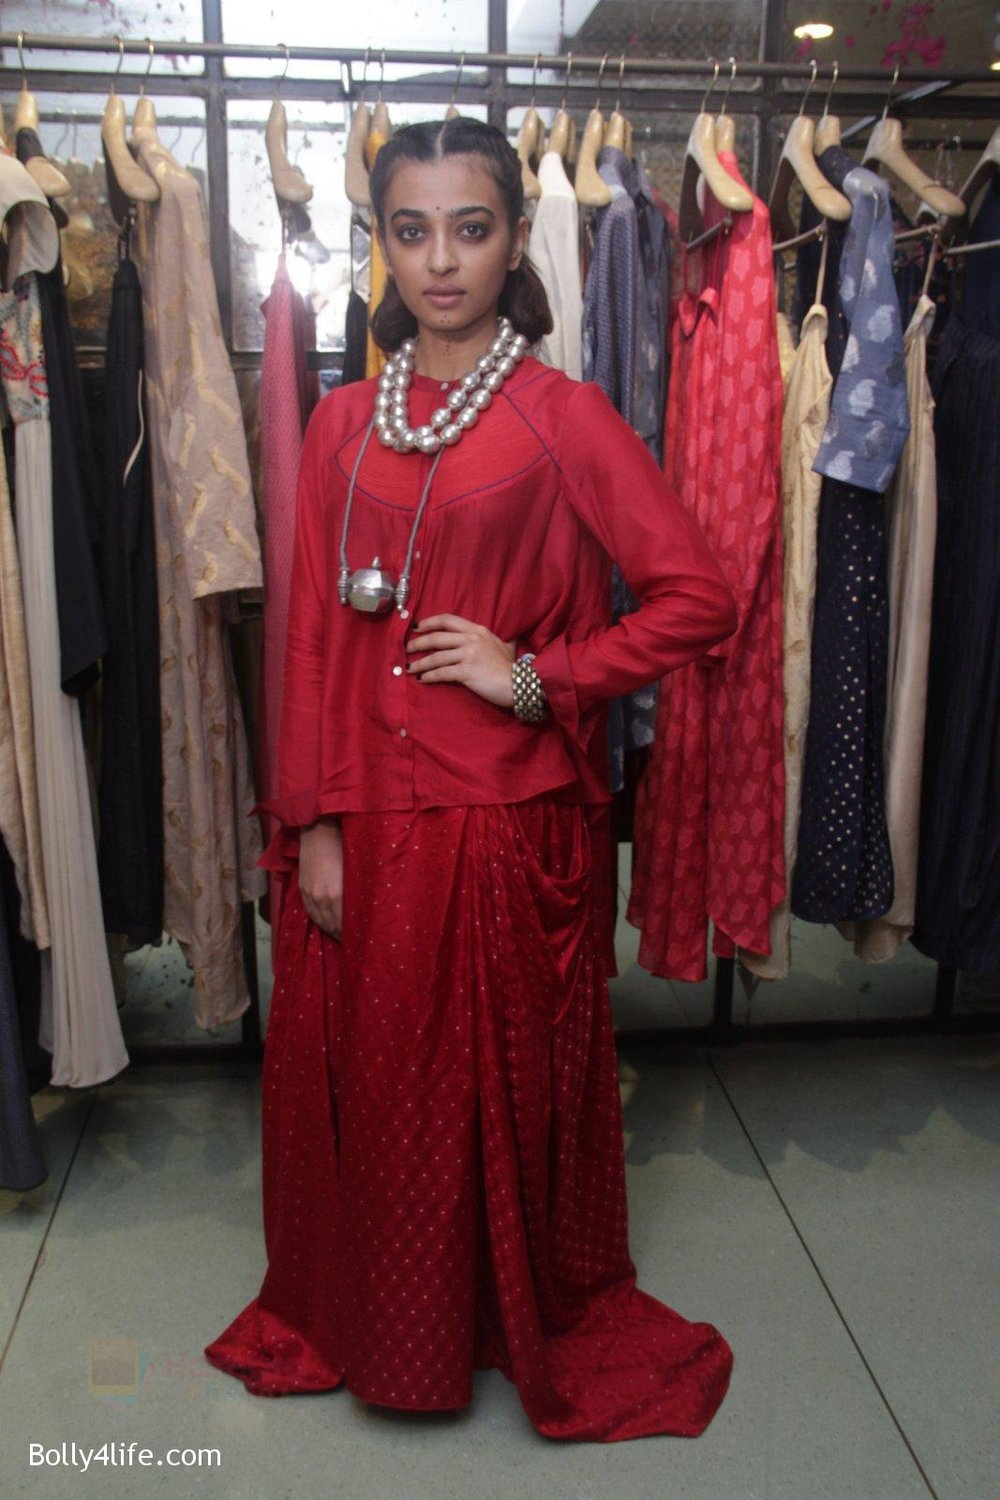 Radhika-Apte-unveil-Festive-Edit-of-new-Luxury-Pret-label-AMOH-by-Designers-Monica-Karishma-of-JADE-on-26th-Sept-2016-19.jpg